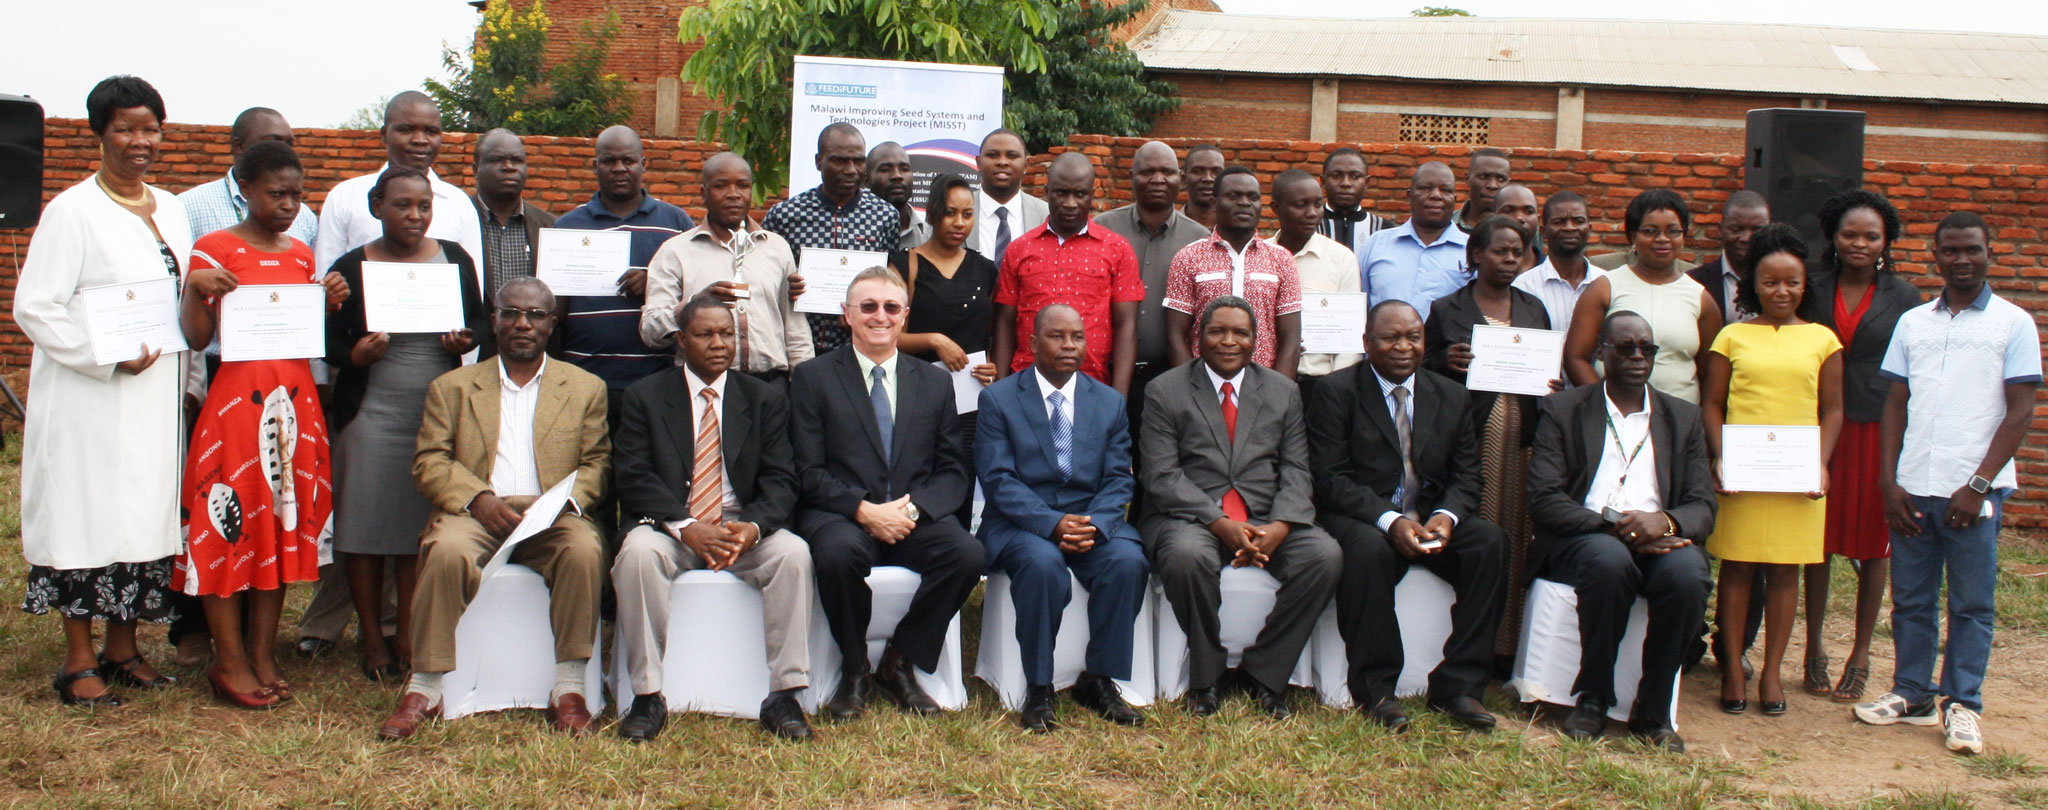 Para seed inspectors at the Graduation ceremony. Photo: L Lazarus, ICRISAT